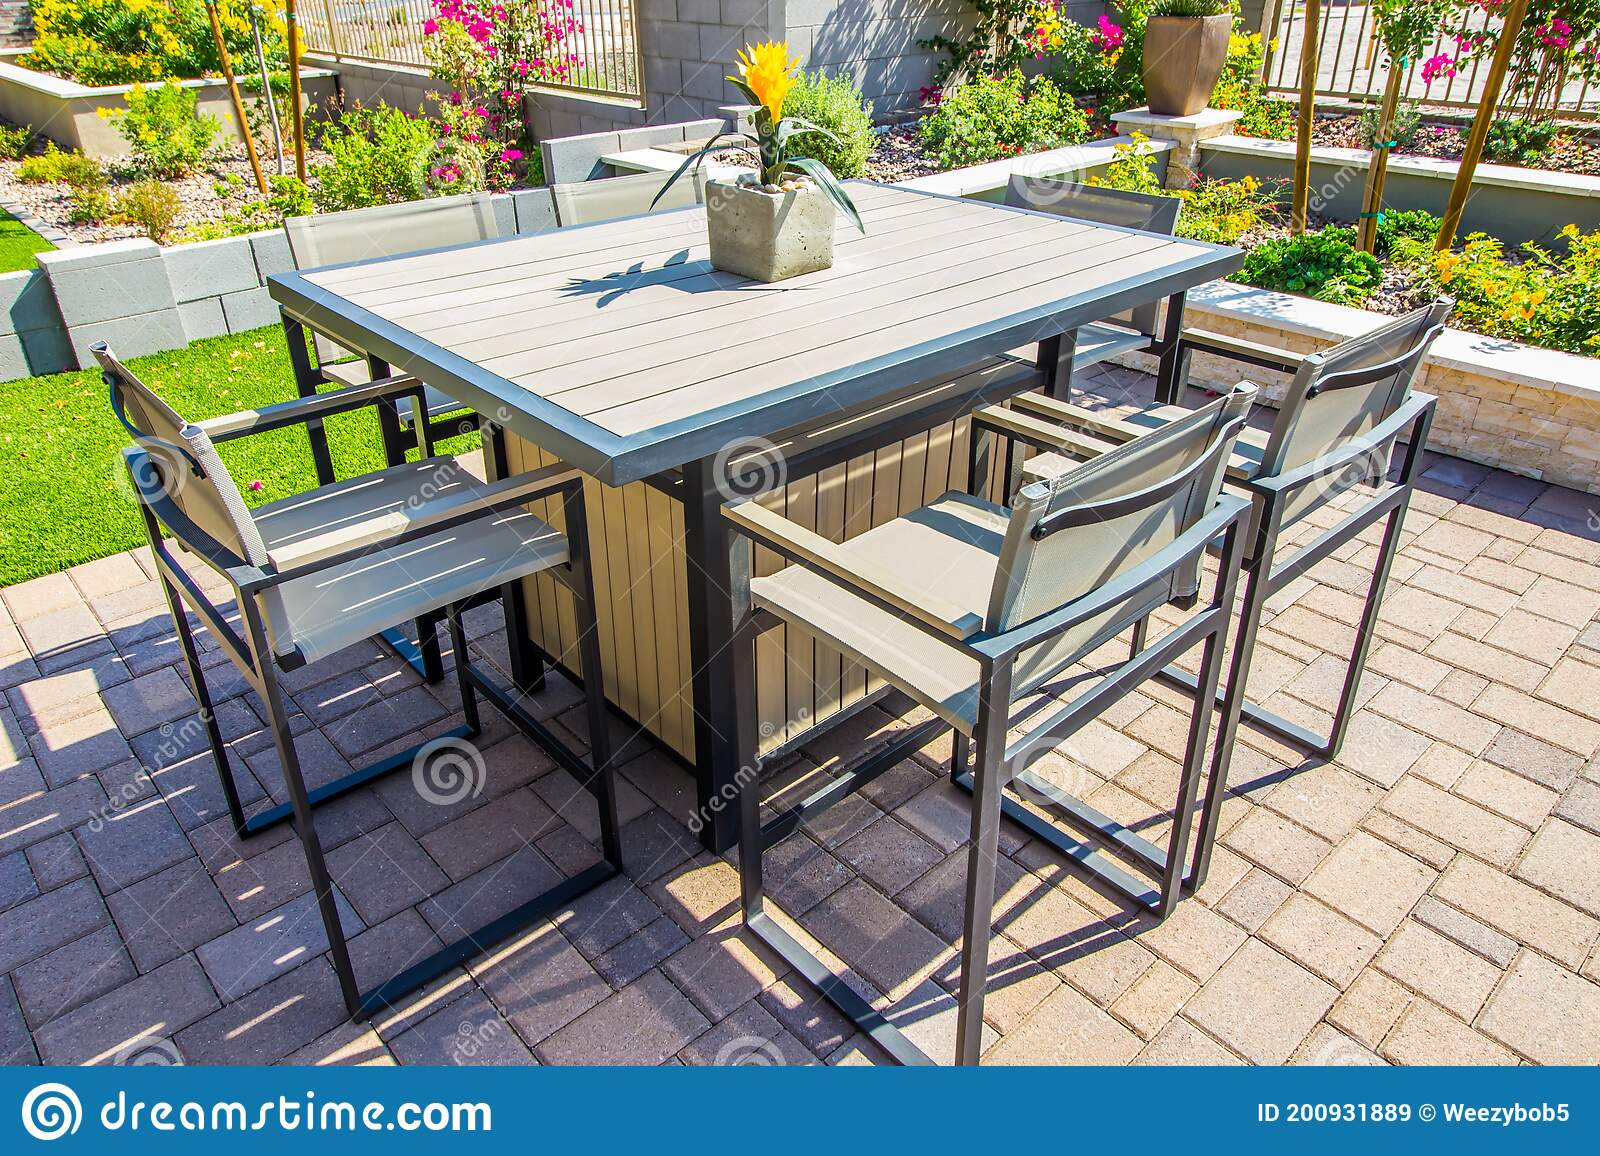 rear yard patio furniture including table and six chairs stock image image of shrubs pots 200931889